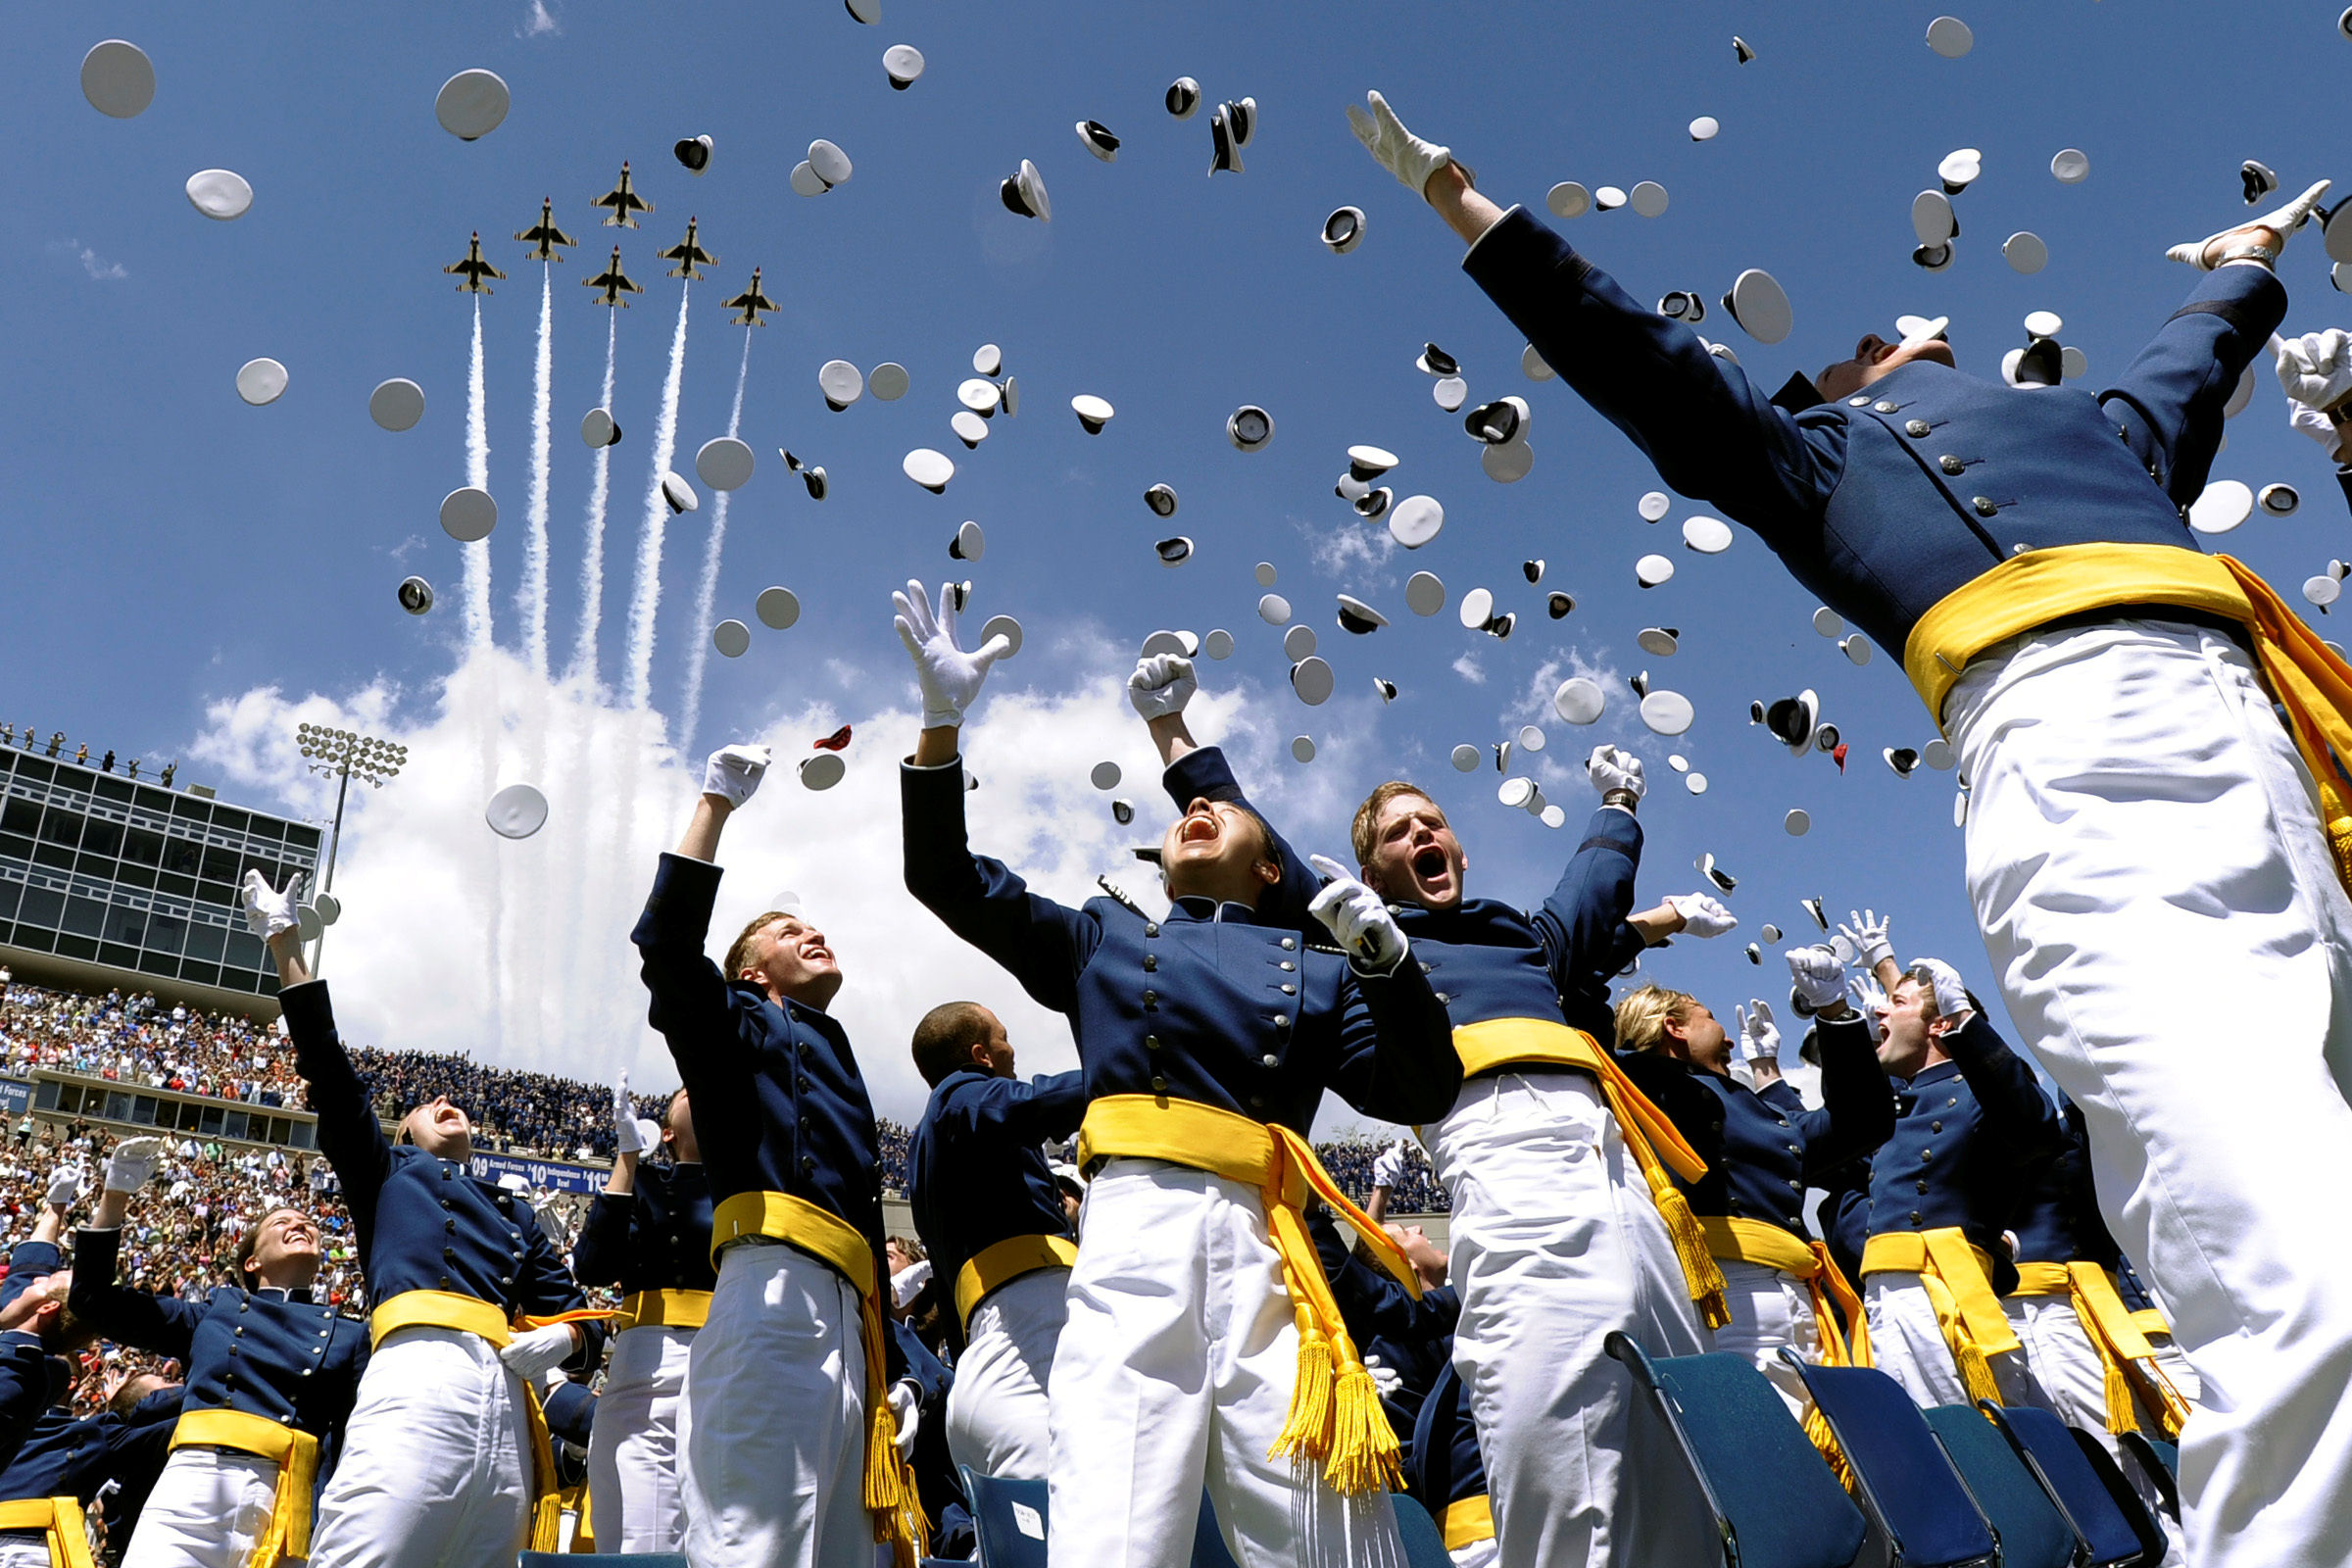 The U.S. Air Force Thunderbirds roar overhead as  the U.S. Air Force Academy Class of 2014 graduate during commencement exercises in Colorado Springs, Colo. May 28, 2014.  A total of 995 cadets  received their commission.  (Air Force photo/ Mike Kaplan)